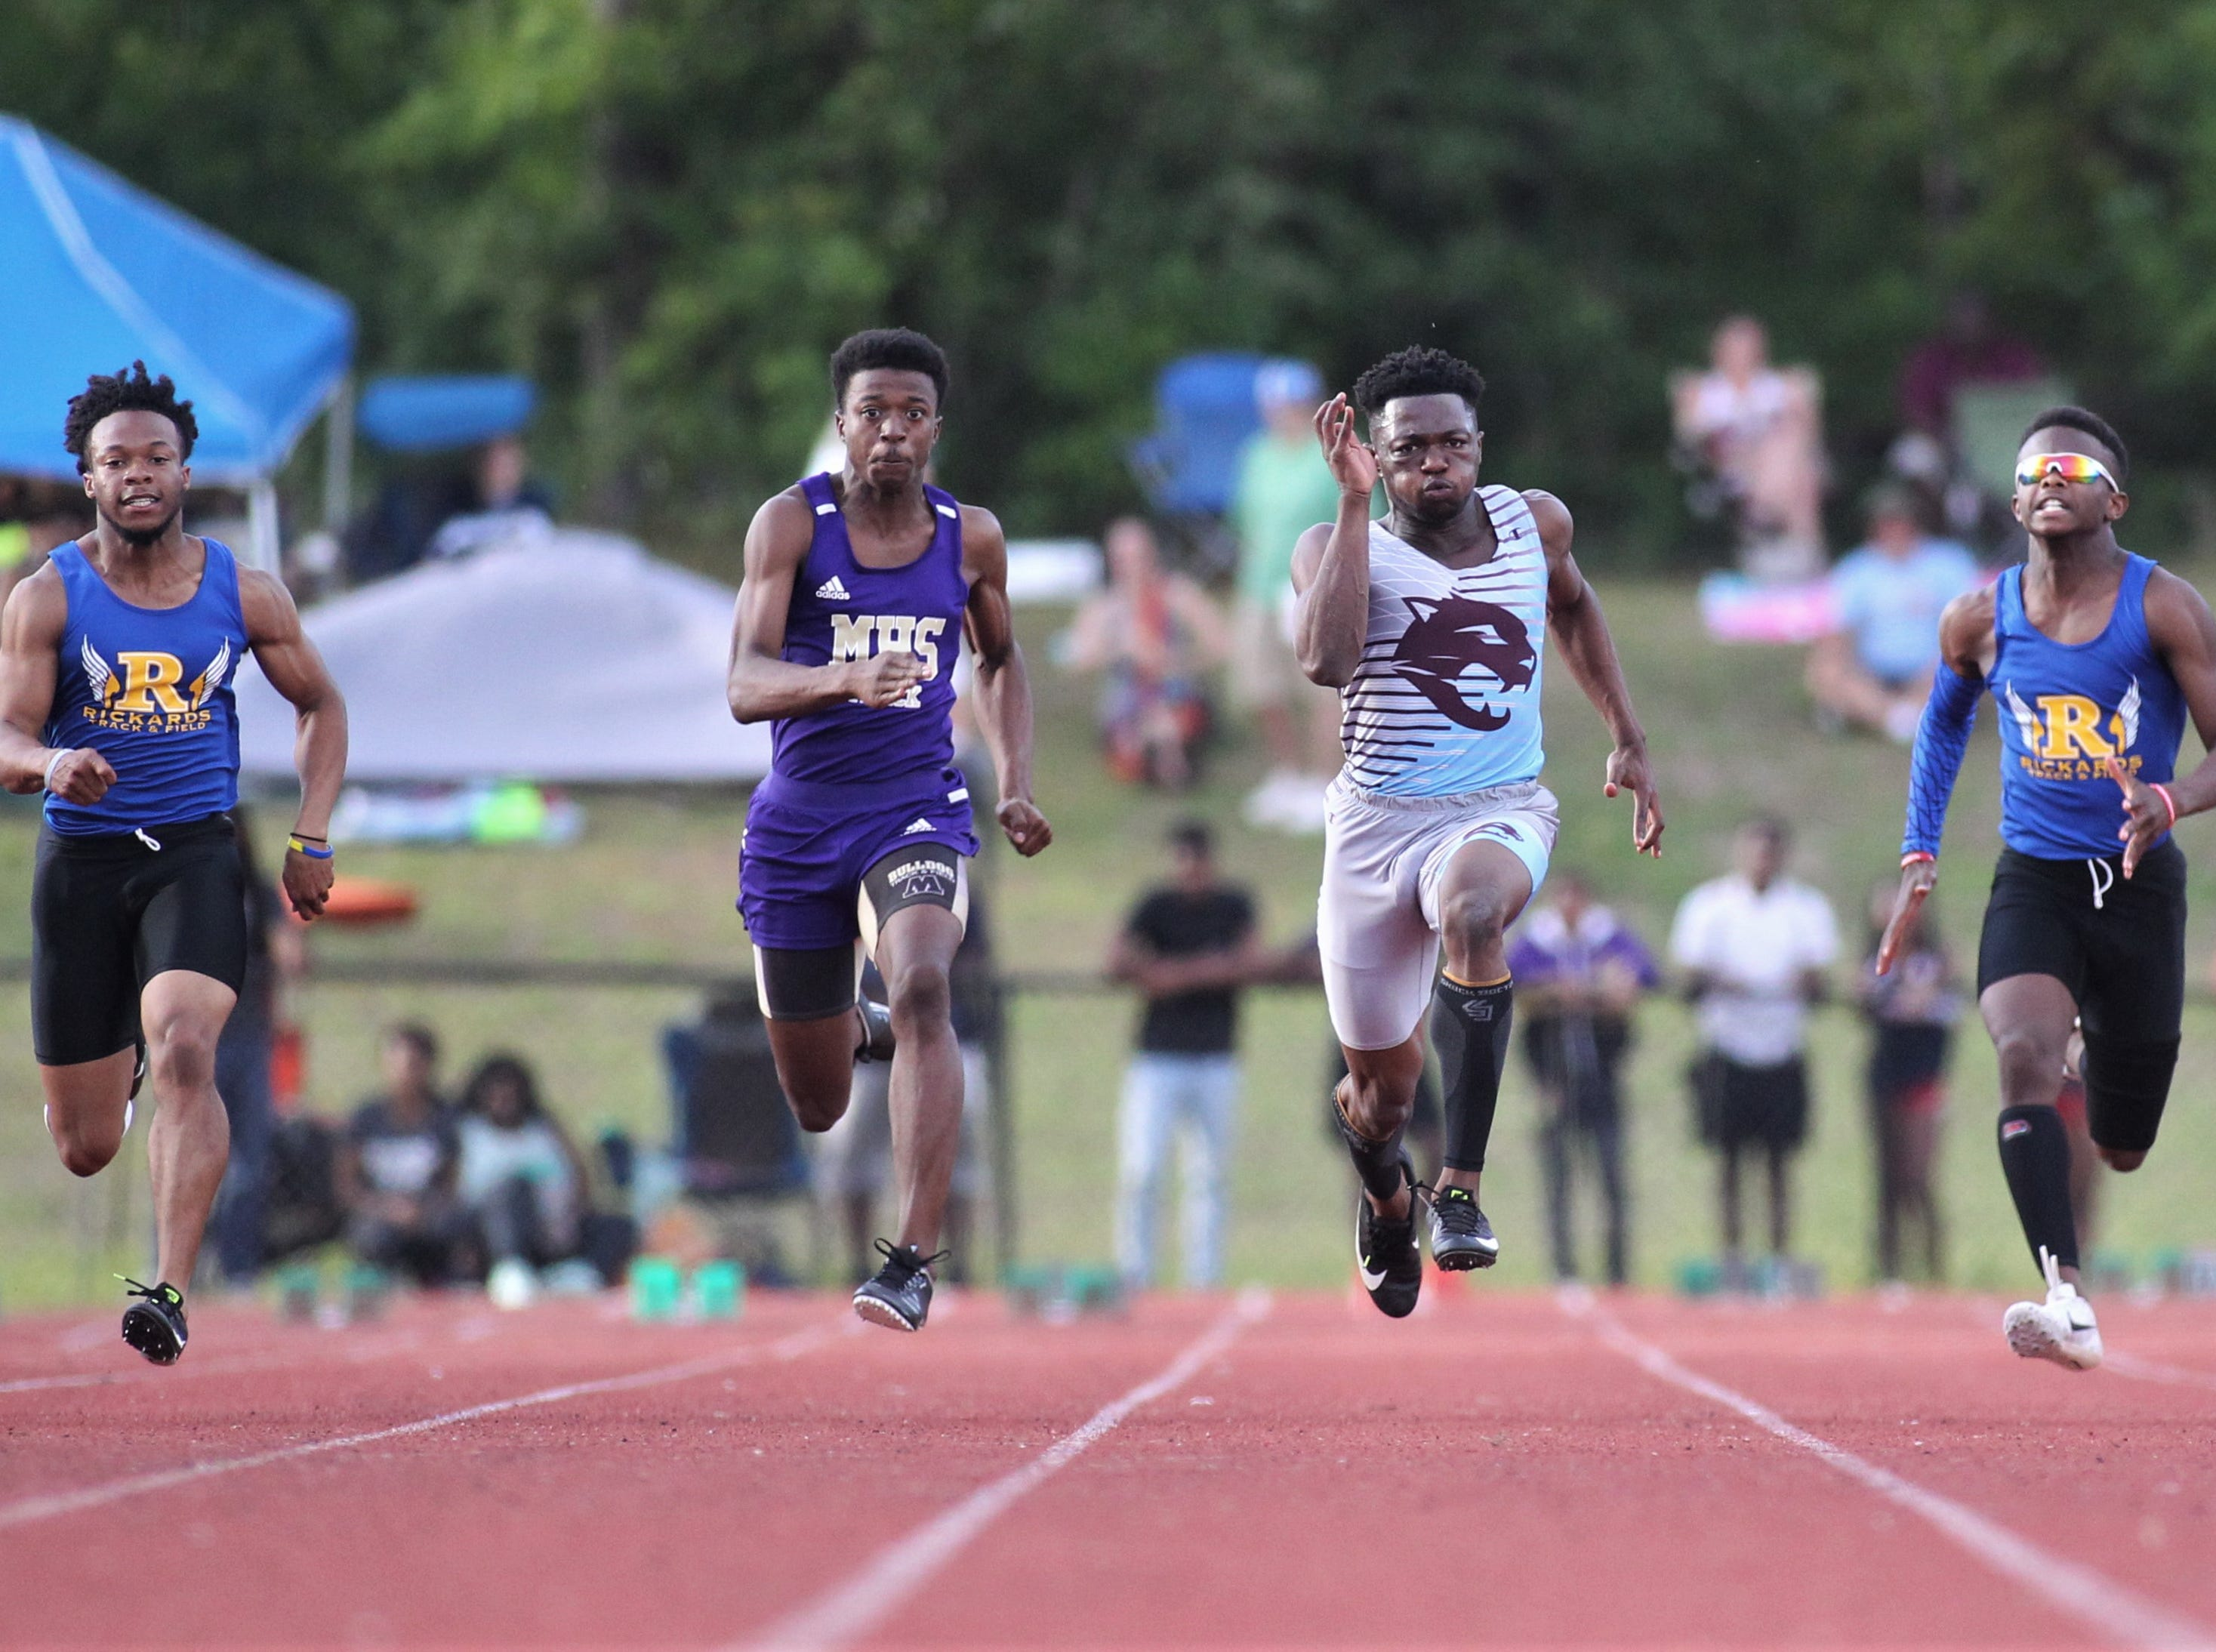 Gadsden County junior Dequavious Charleston (middle) sprints in the 100-meter dash during District 3-1A and 2-2A track and field meets at Florida High on Saturday, April 13, 2019.